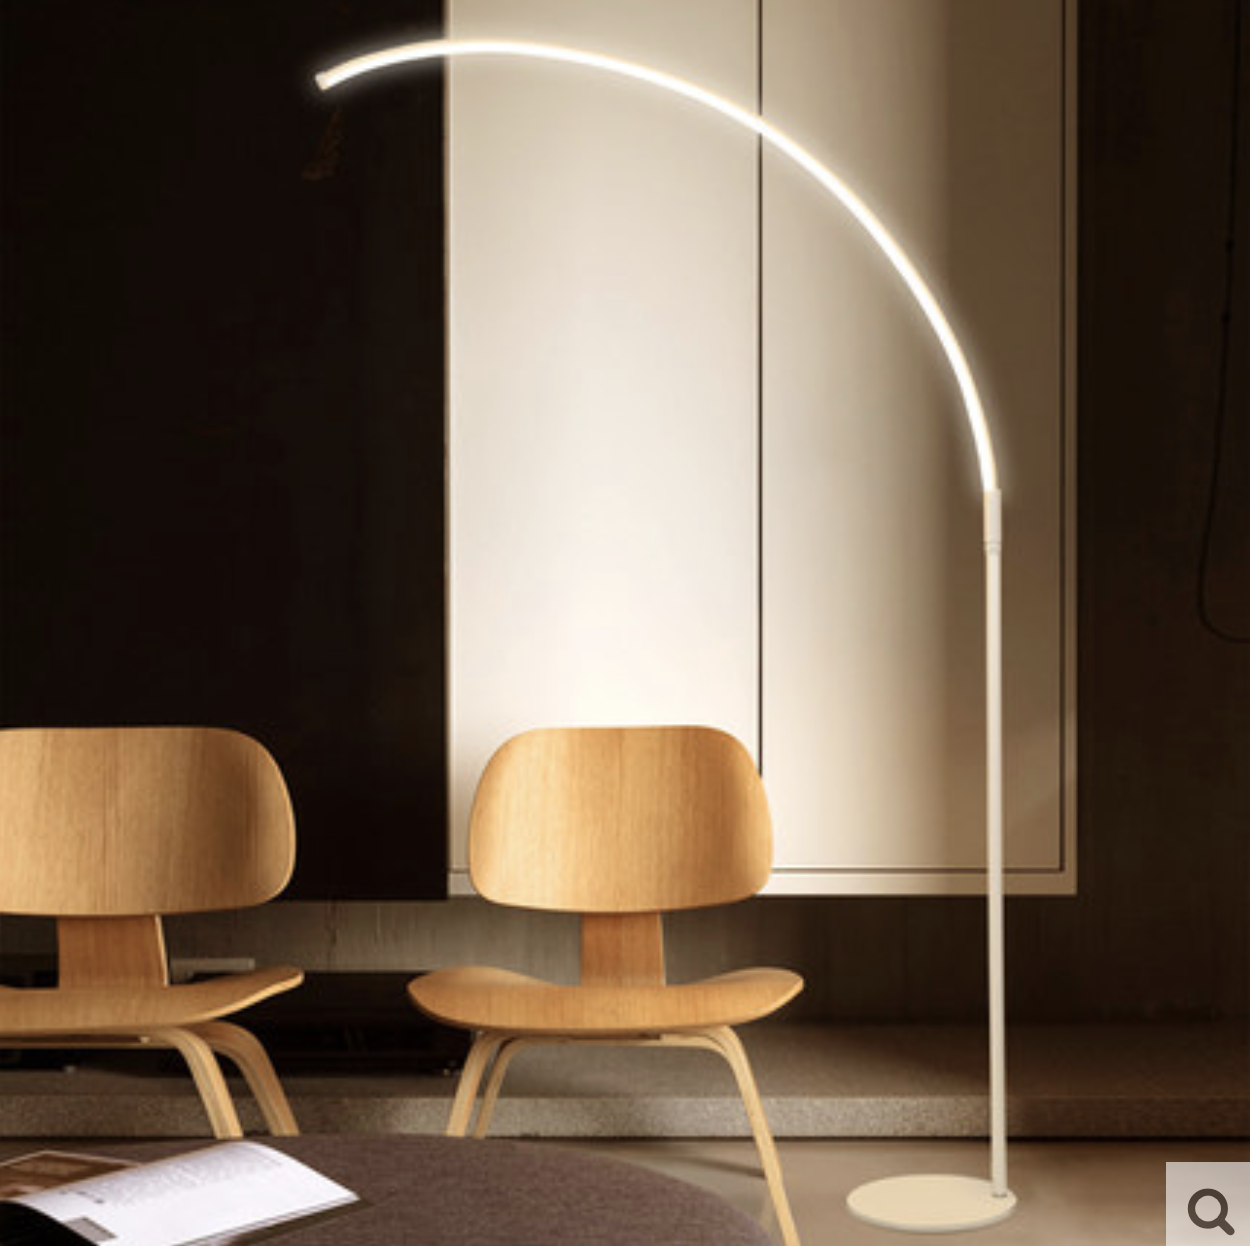 Minimalist Furniture Taobao - Curved standing lamp